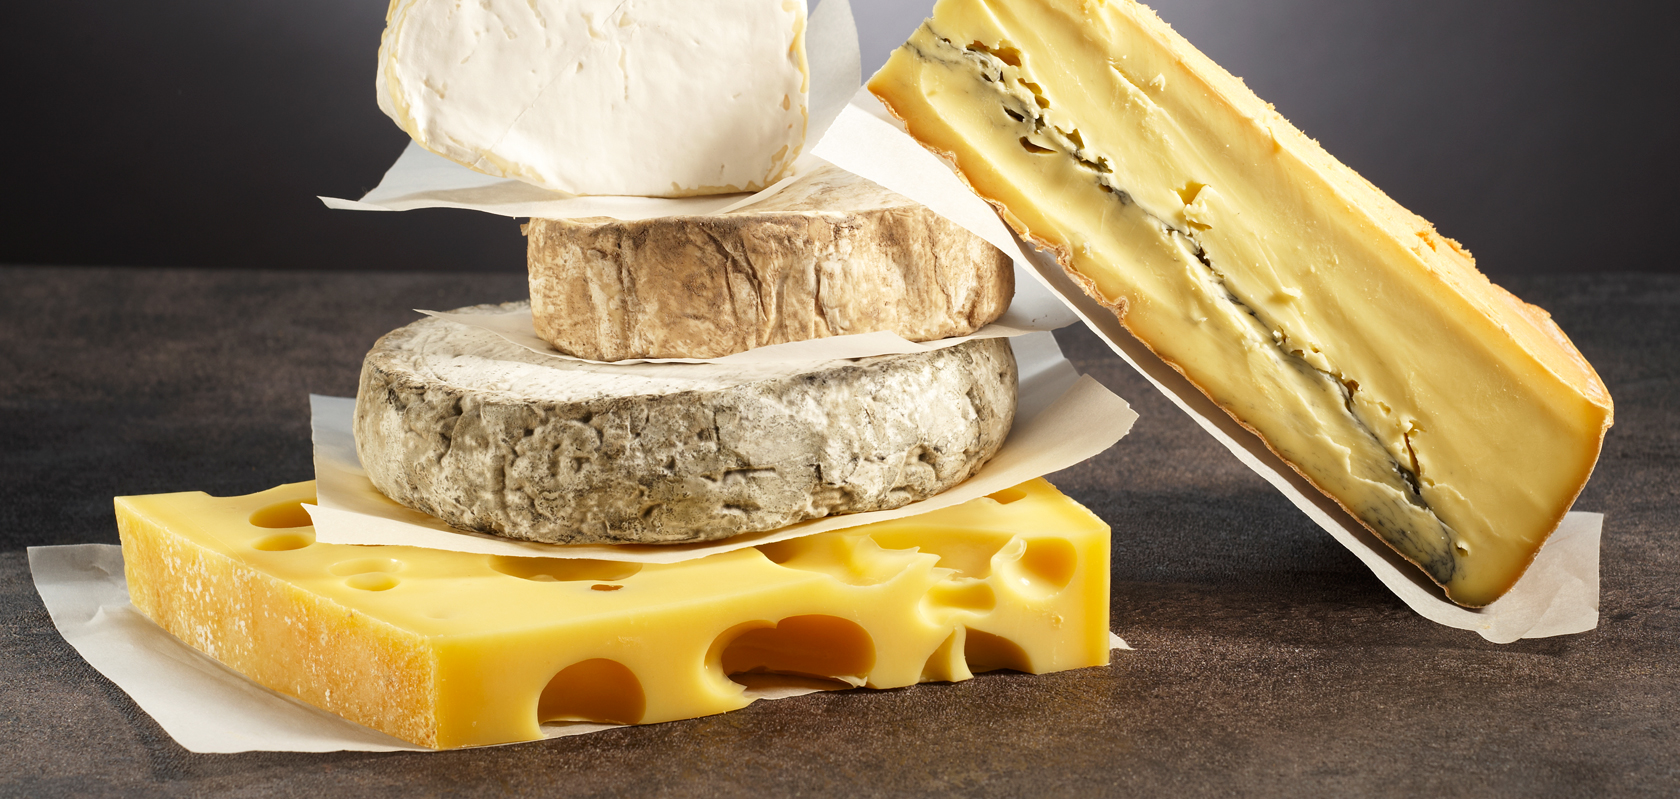 assortiement-de-fromages